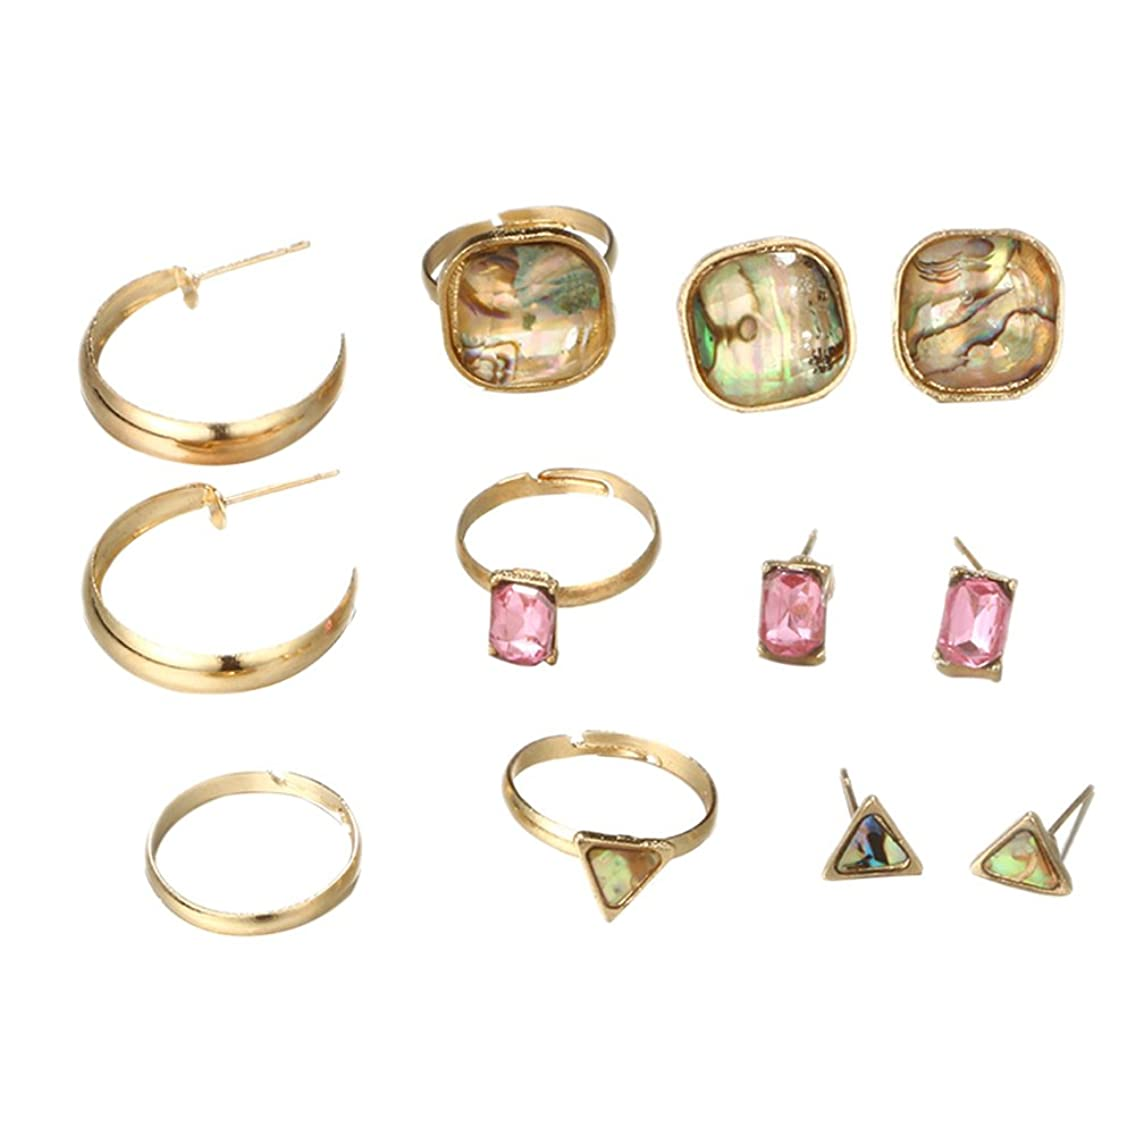 856store 8 Pcs Women Geometric Hoop Earrings Ear Studs Band Opening Rings Jewelry Set